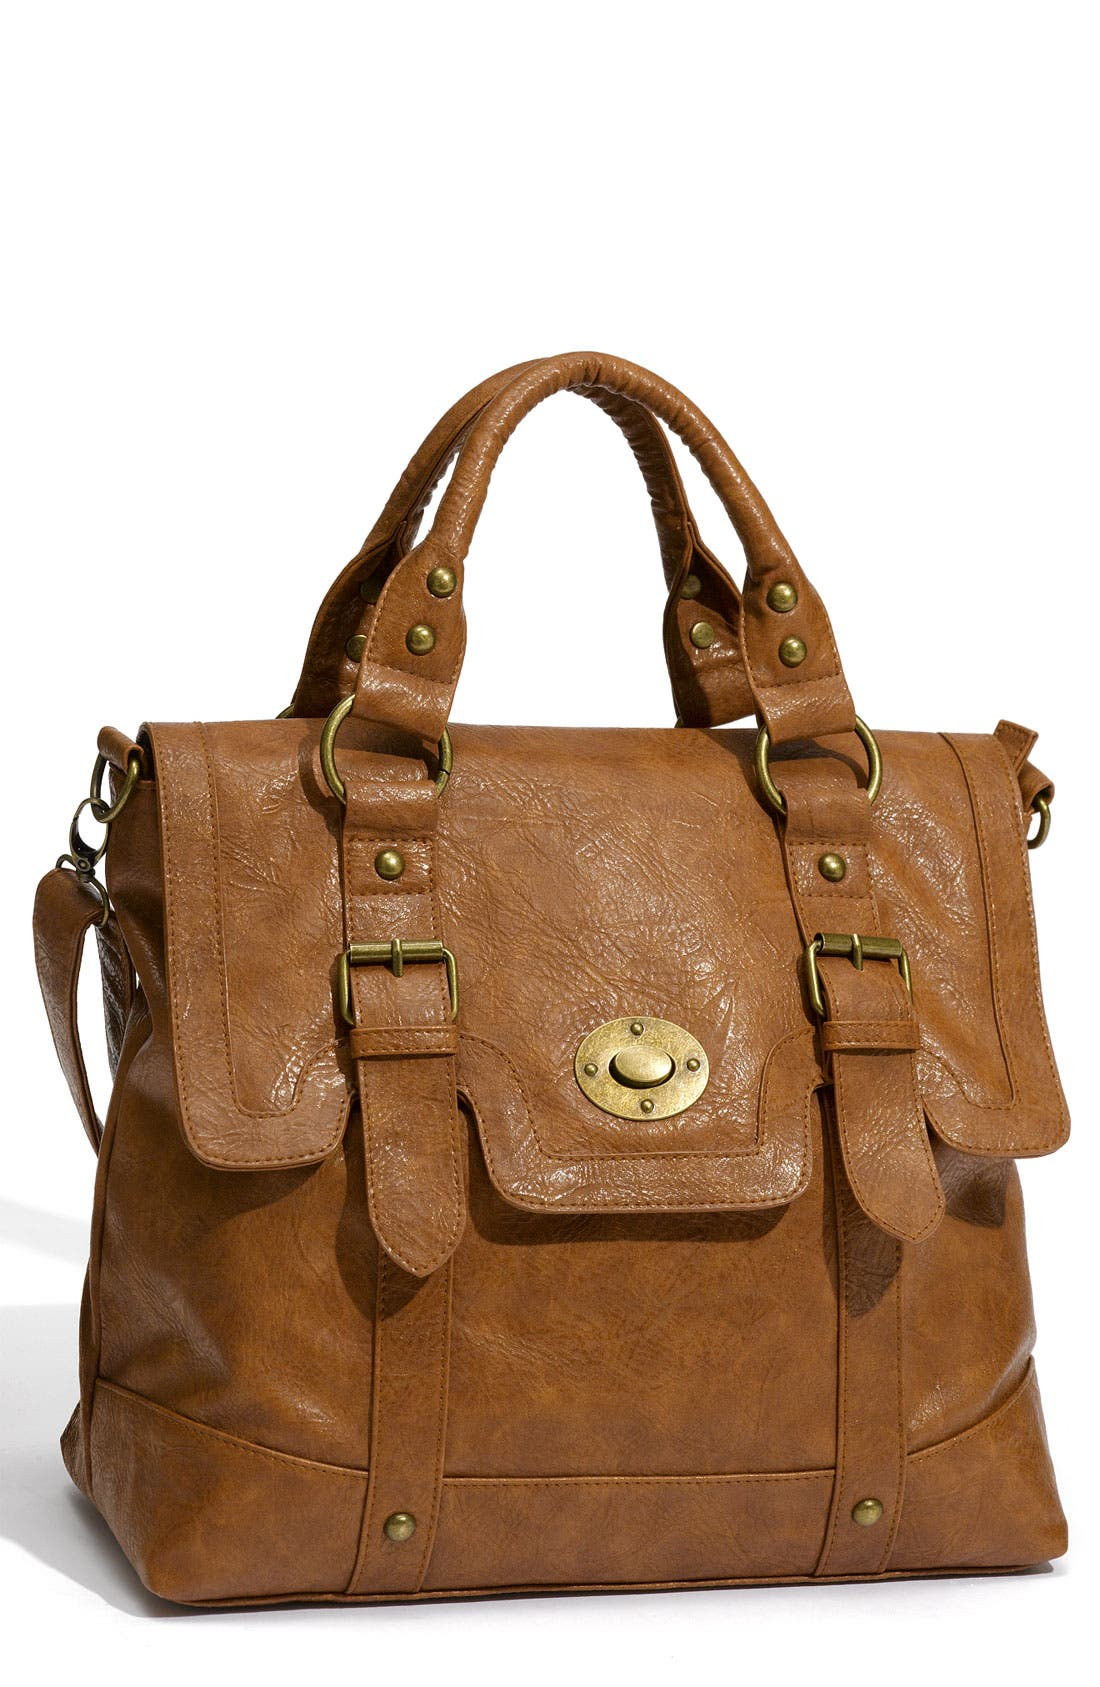 Main Image - Marais 'Lady' Satchel